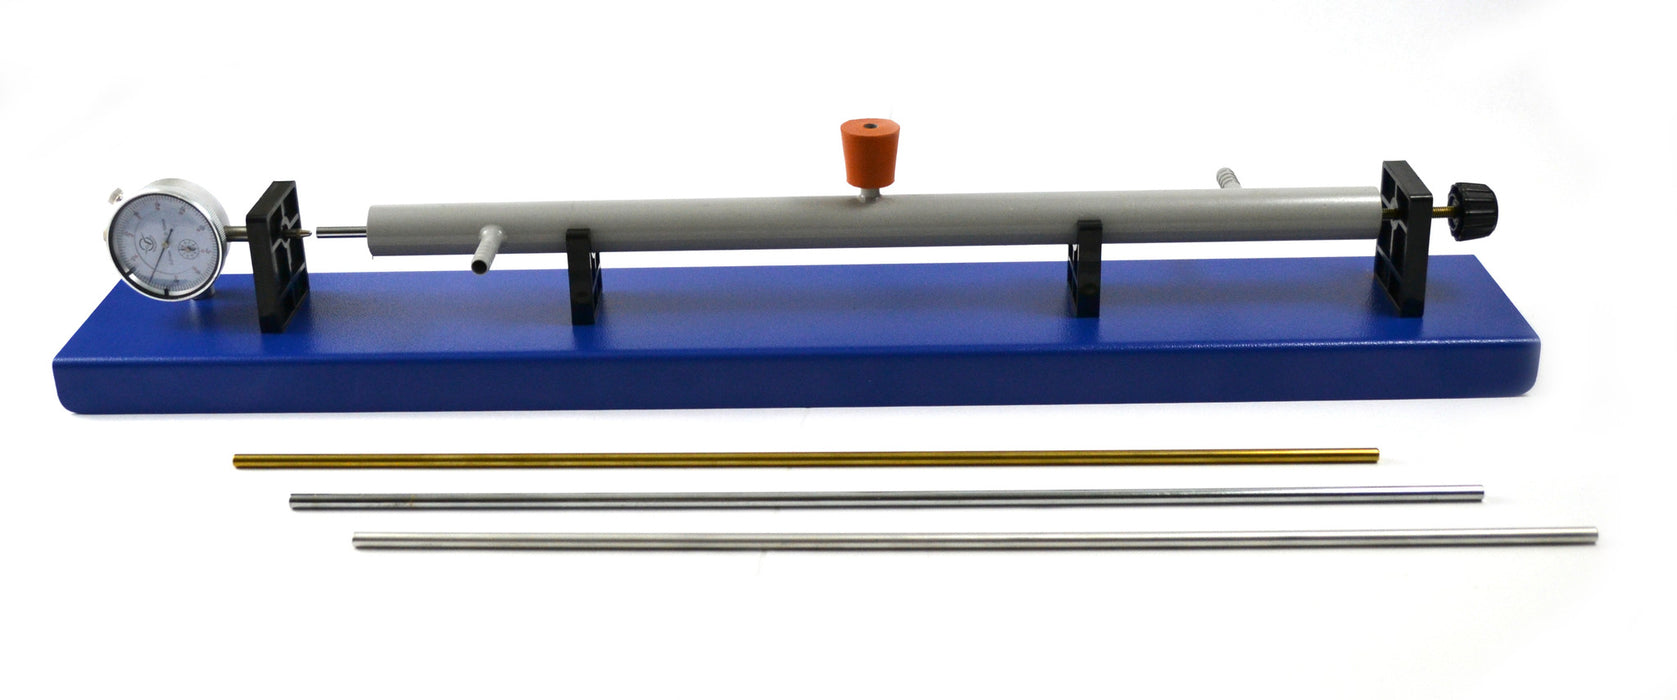 Linear Expansion Apparatus with Gauge; 3 Rods Included